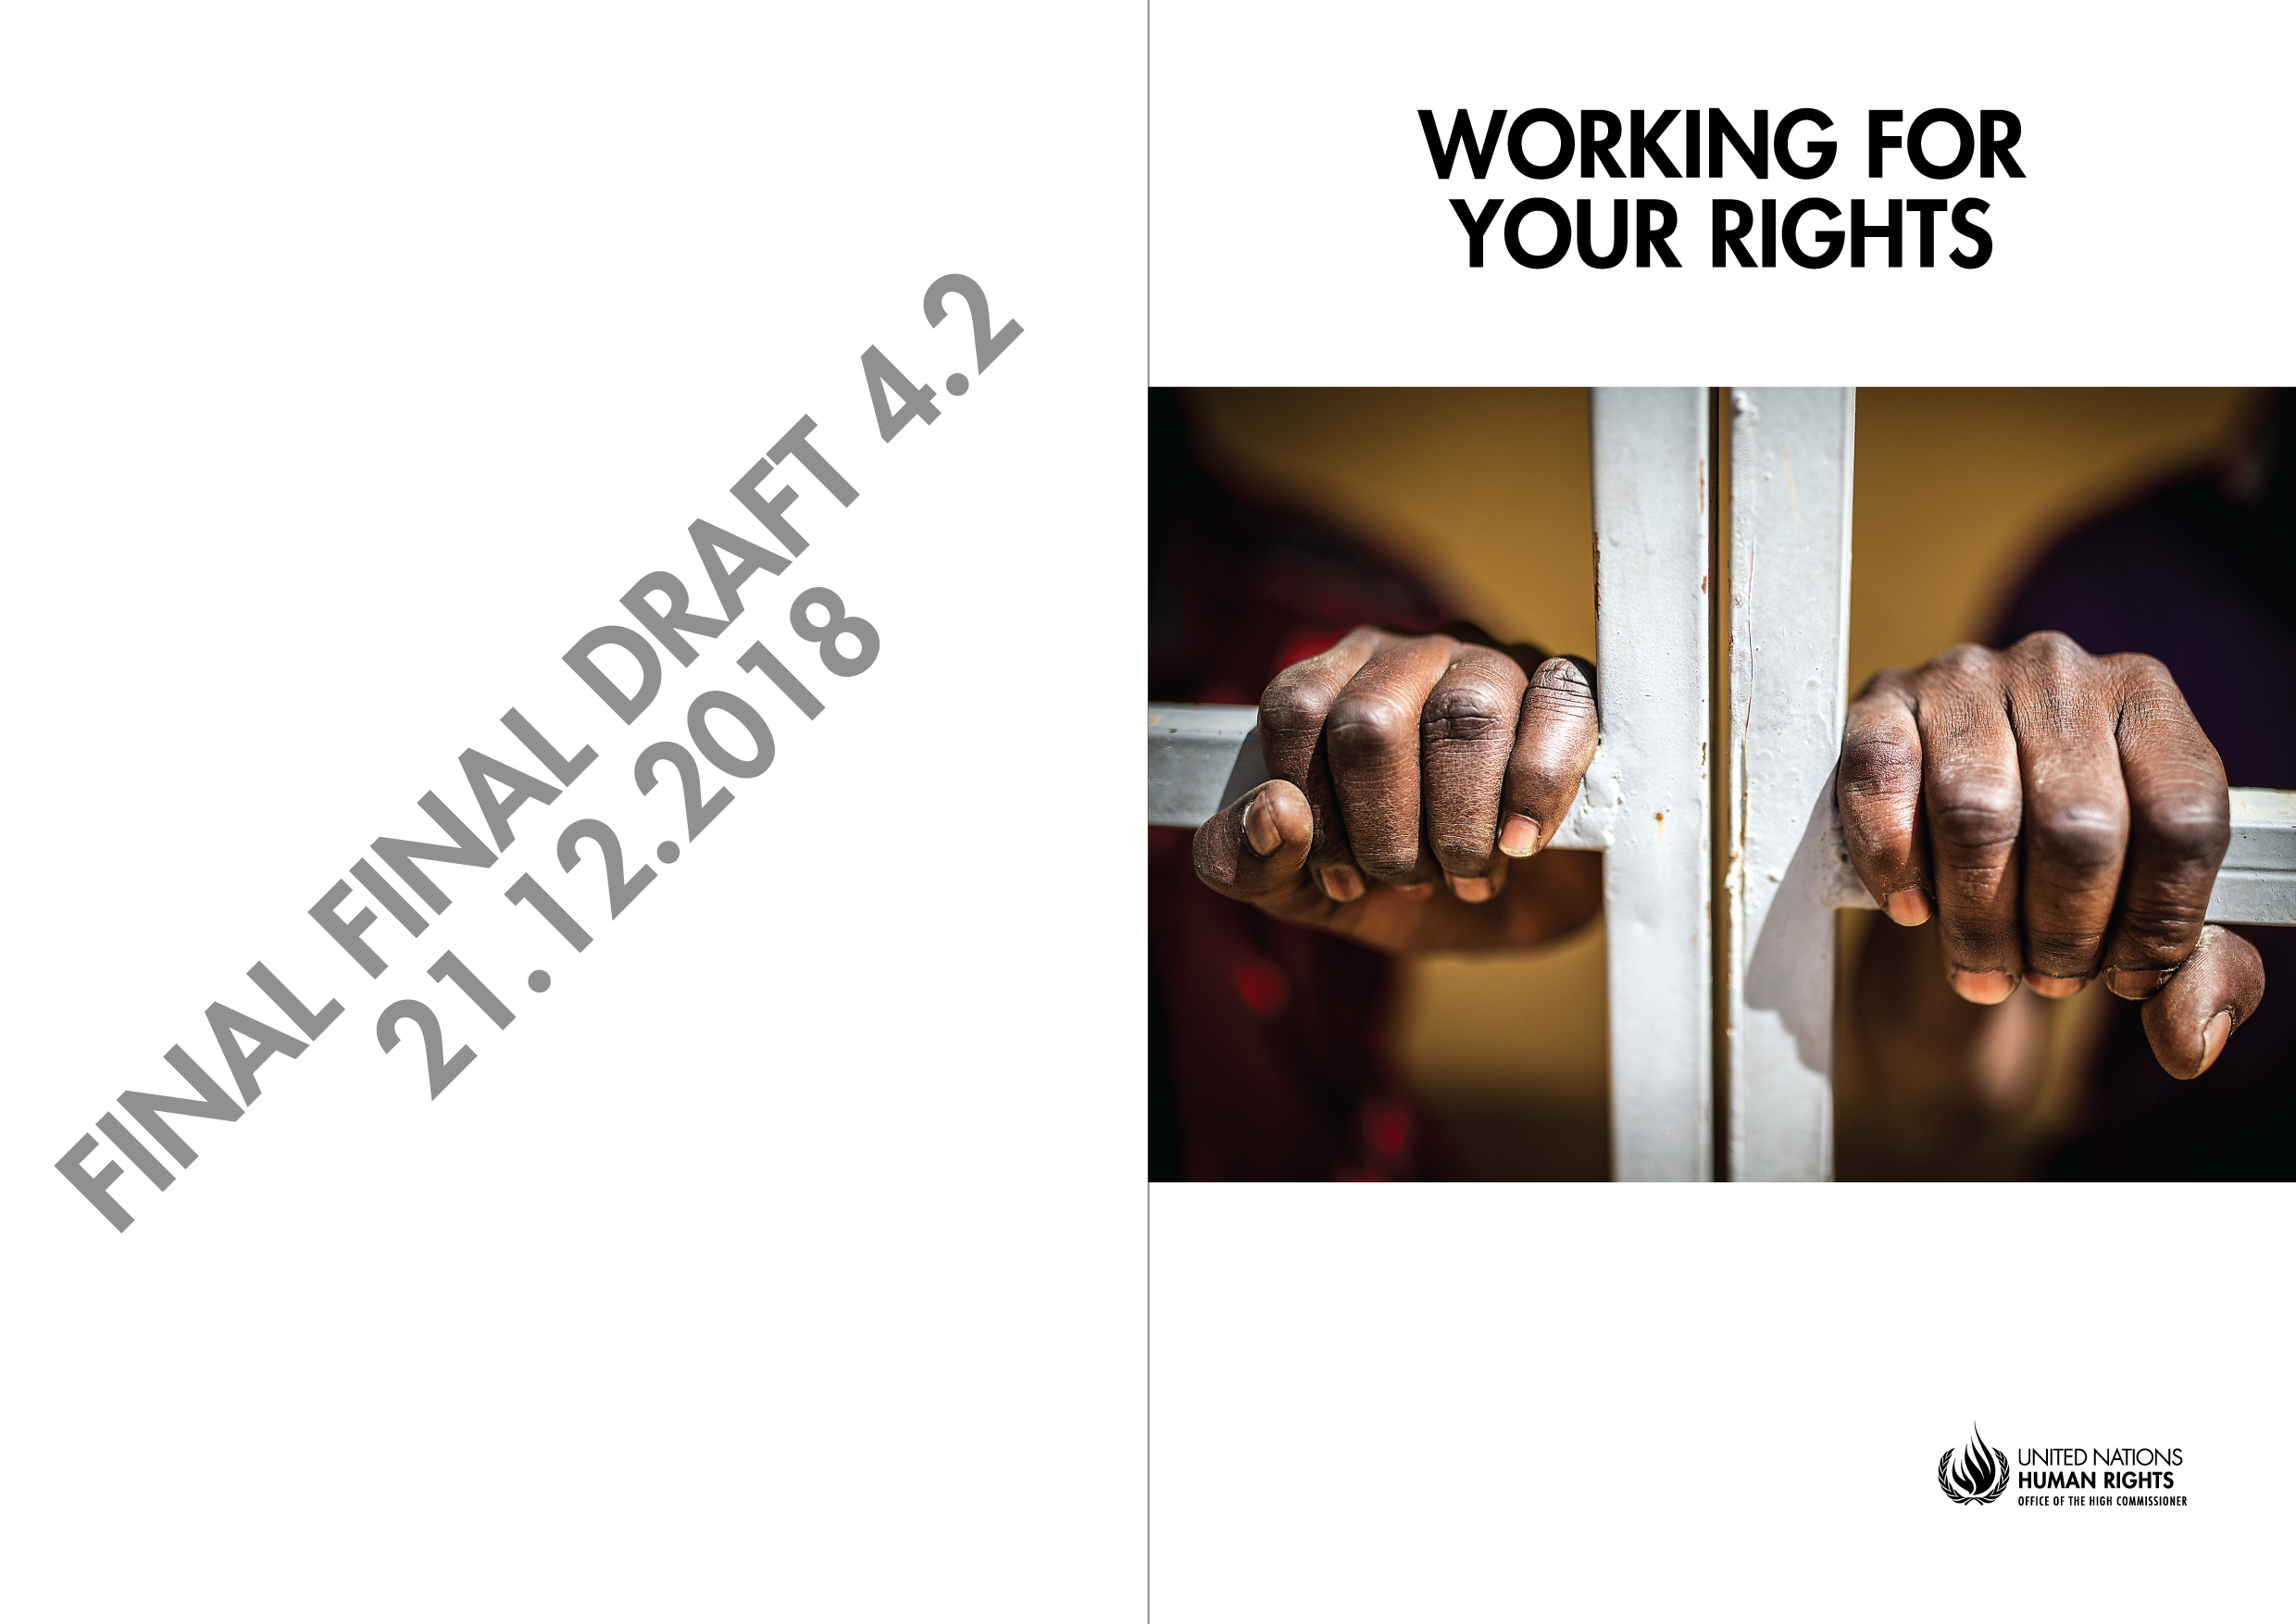 OHCHR Working For Your Rights (Report & Poster Campaign)